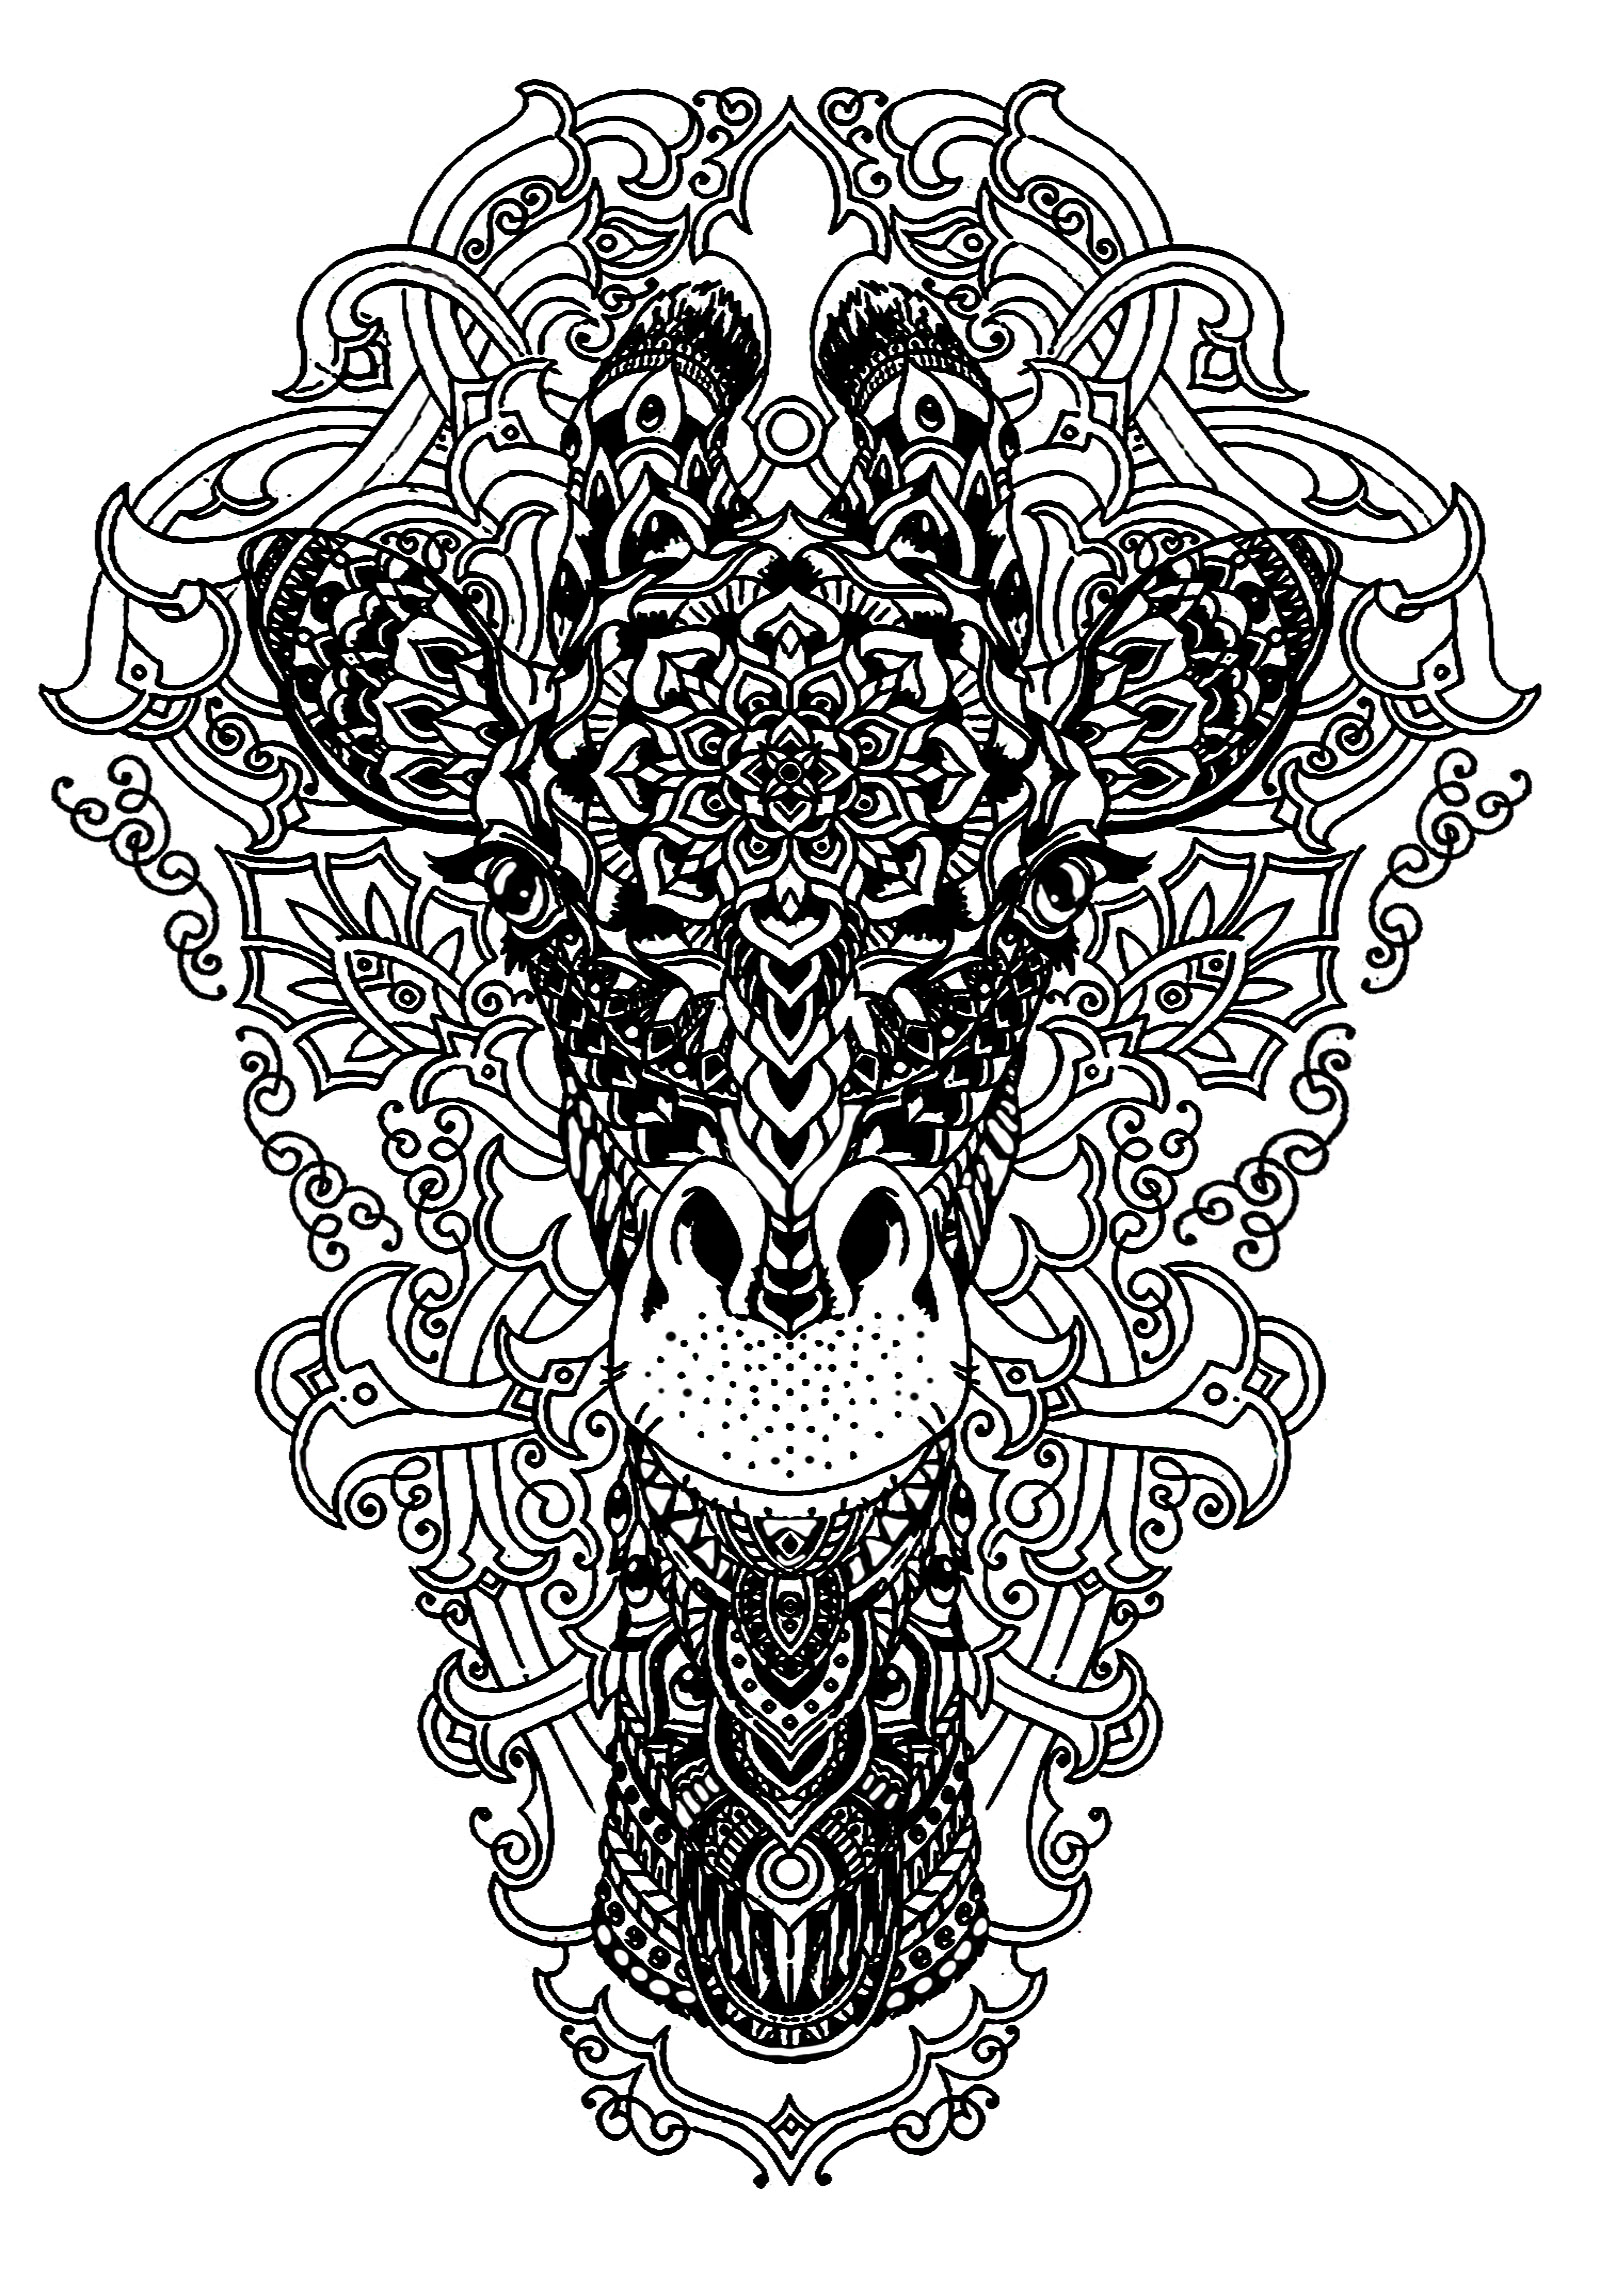 head of a giraffe animals coloring pages for adults justcolor. Black Bedroom Furniture Sets. Home Design Ideas